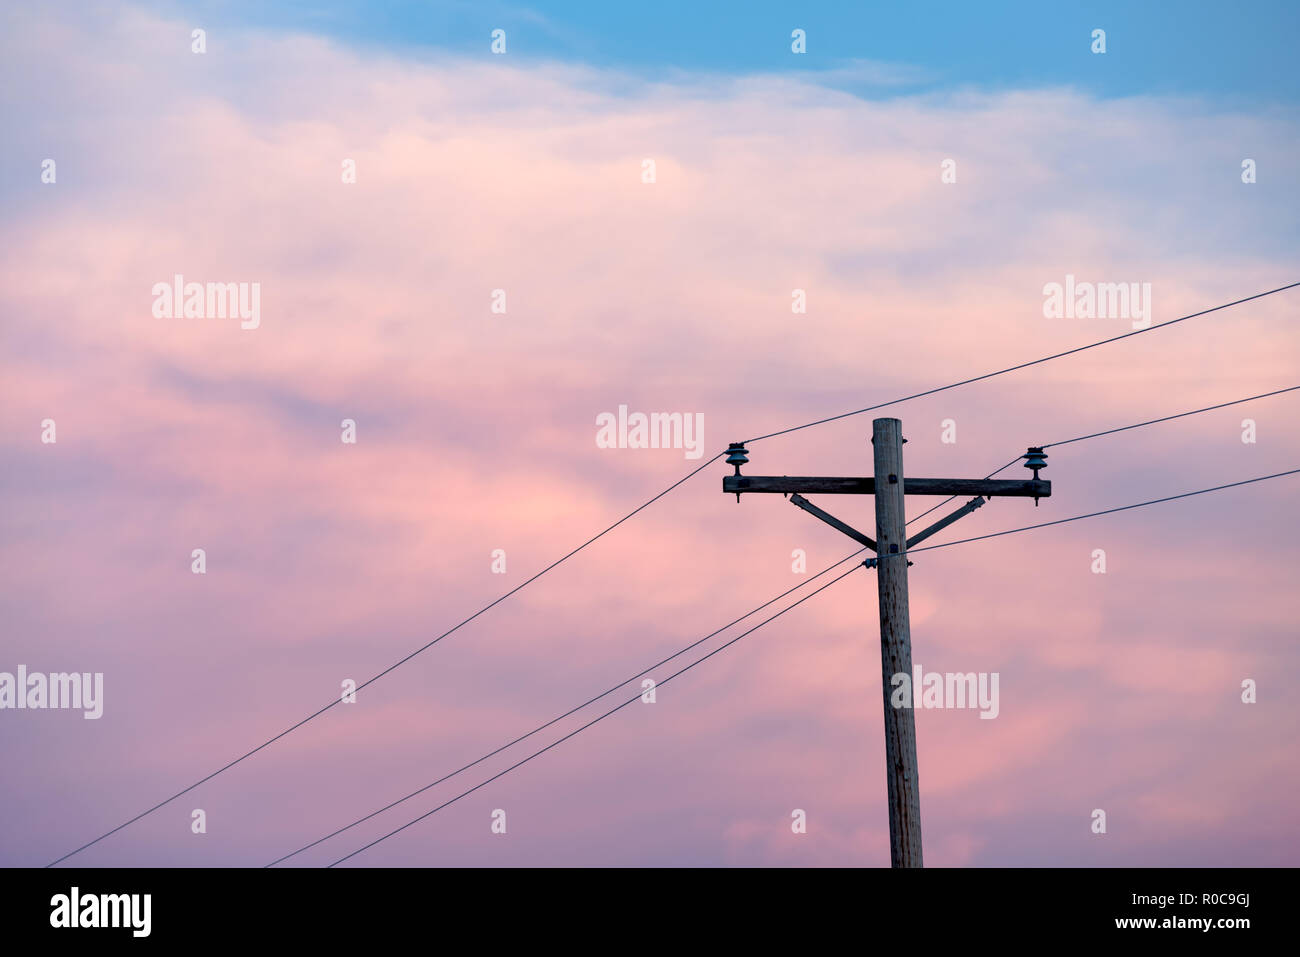 Telegraph pole and wires at sunset - Stock Image